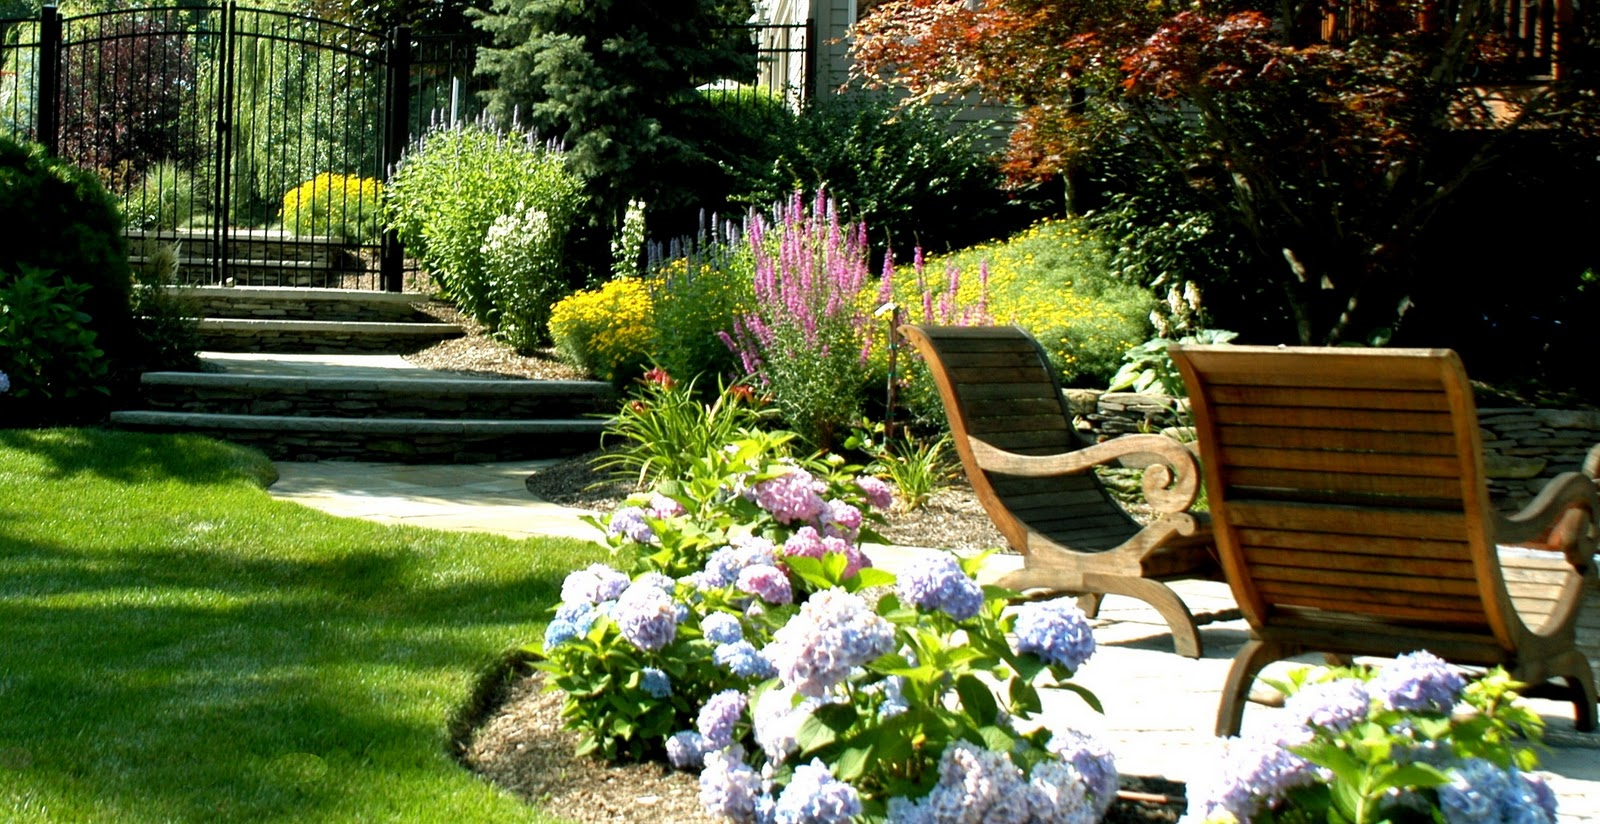 Hightechlandscapes new jersey landscape design for Landscape design